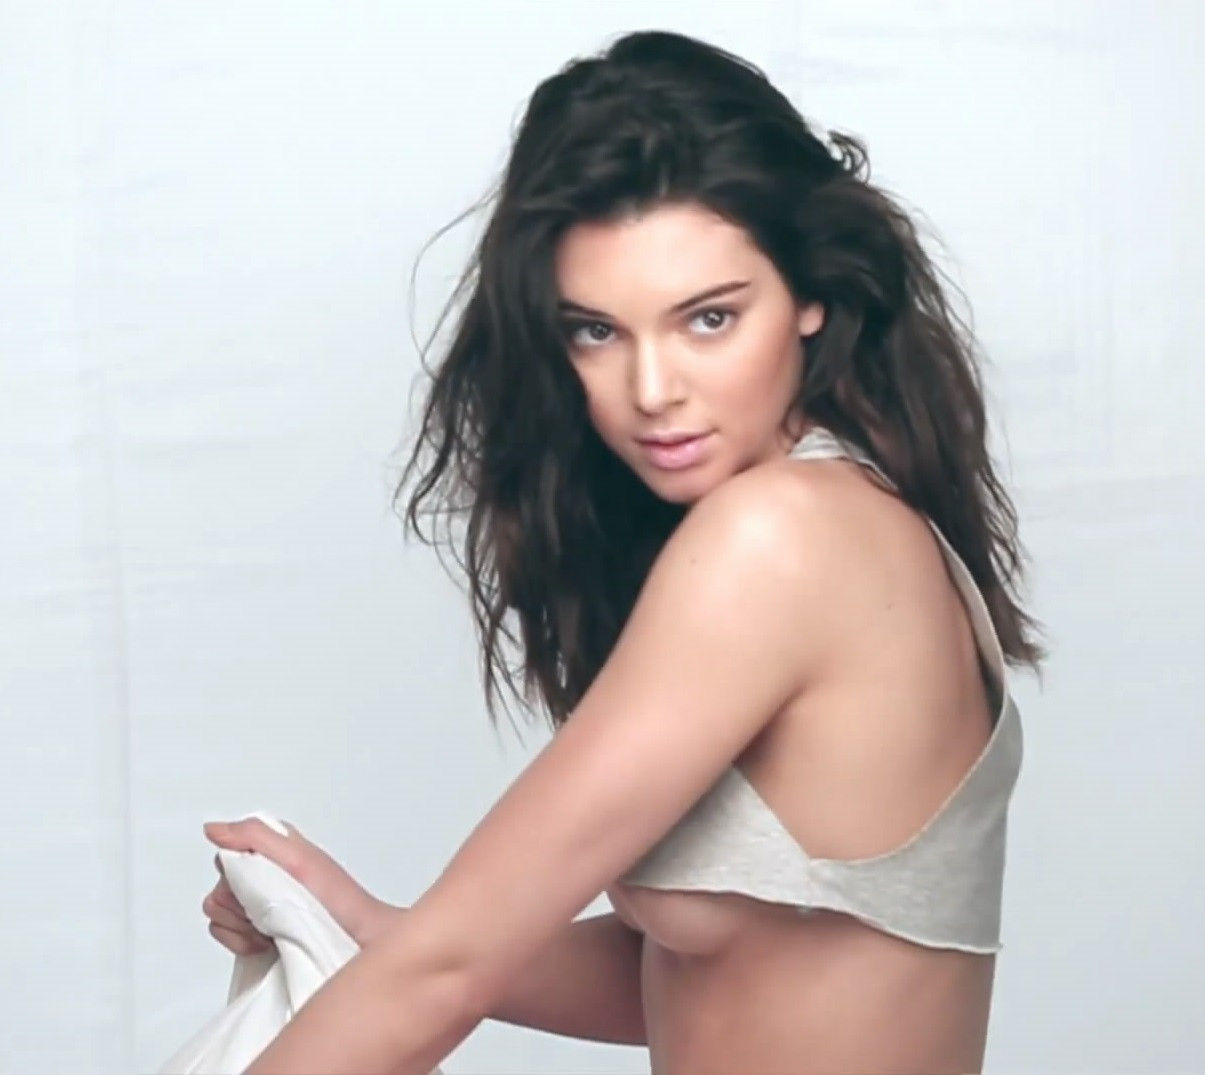 Kendall Jenner Topless 121 TheFappening.nu